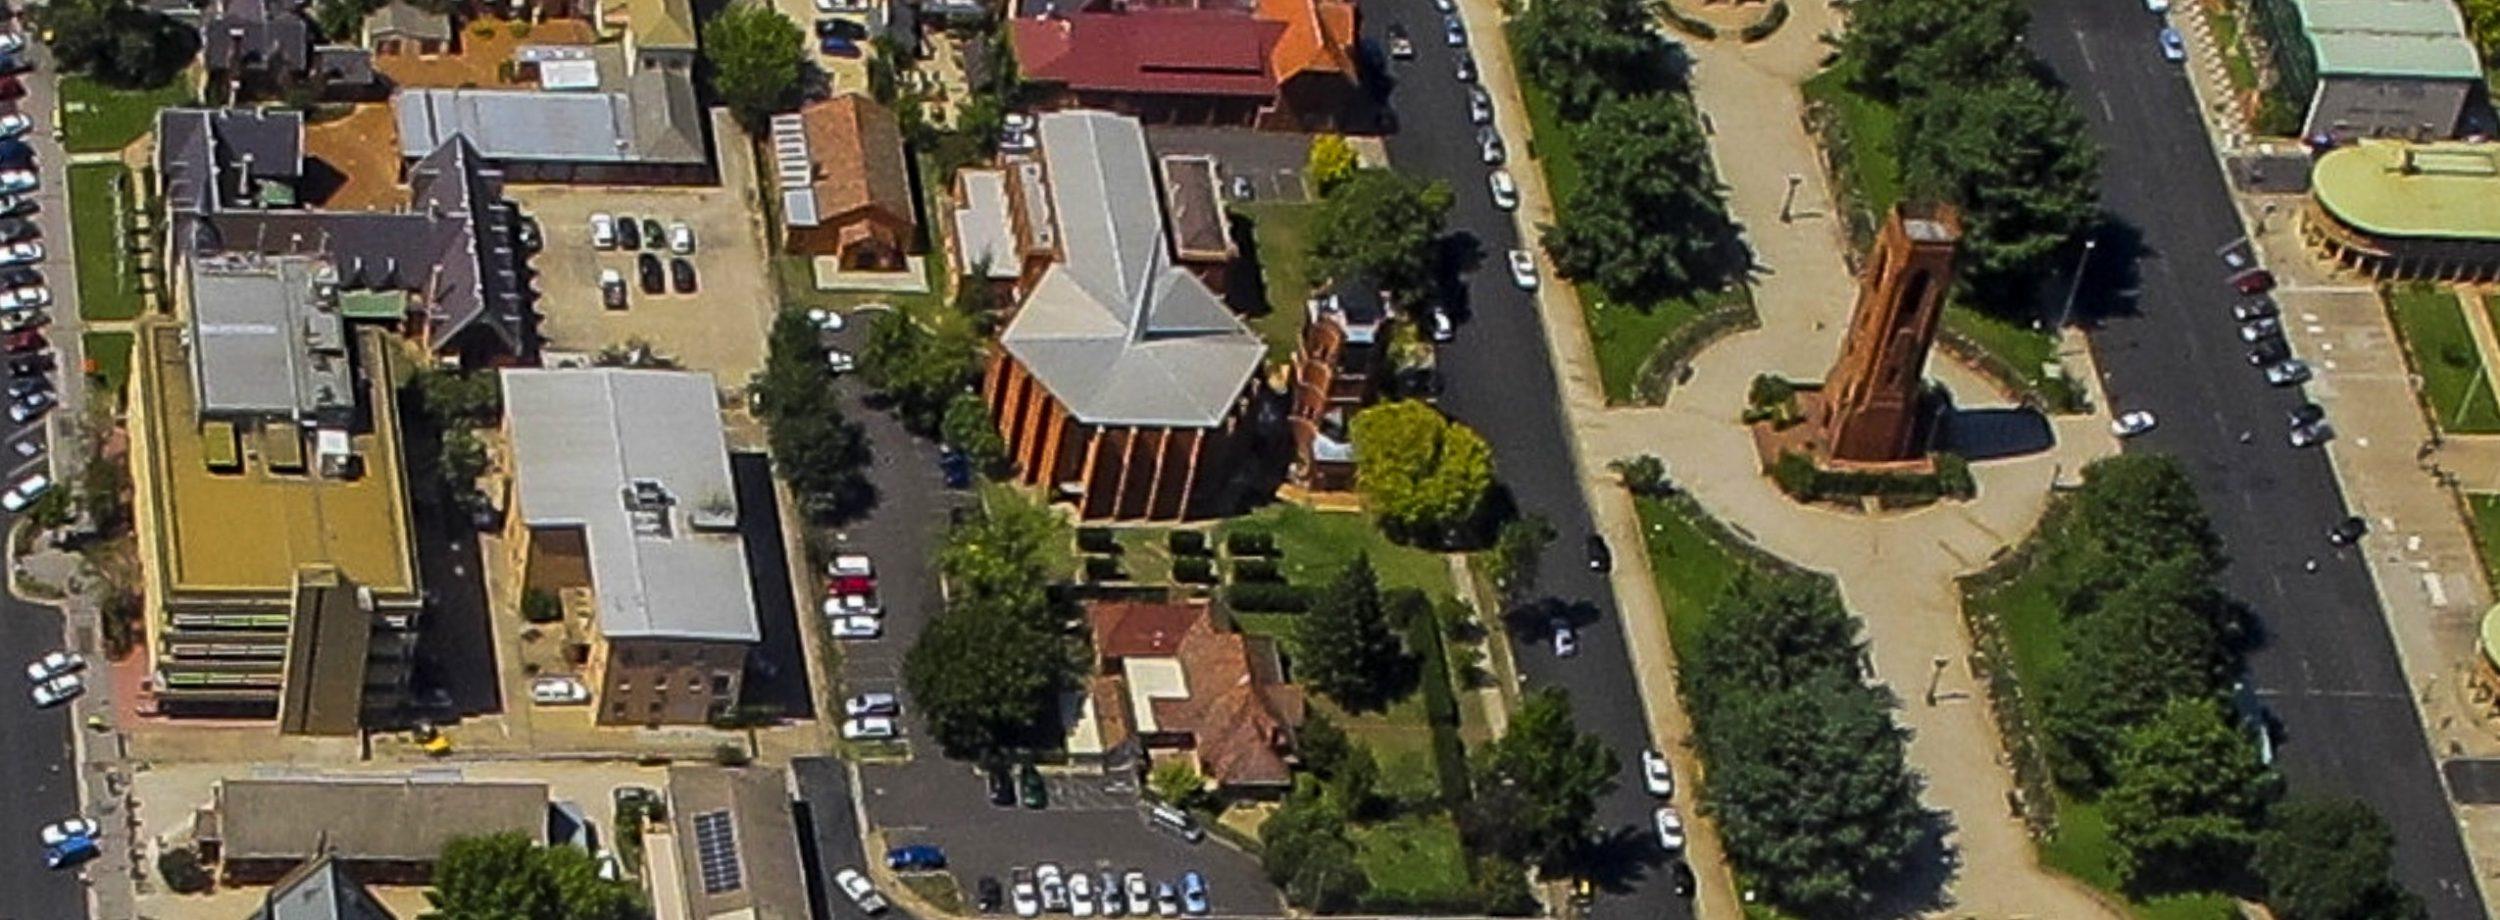 2015 aerial photograph of Bathurst Town Square